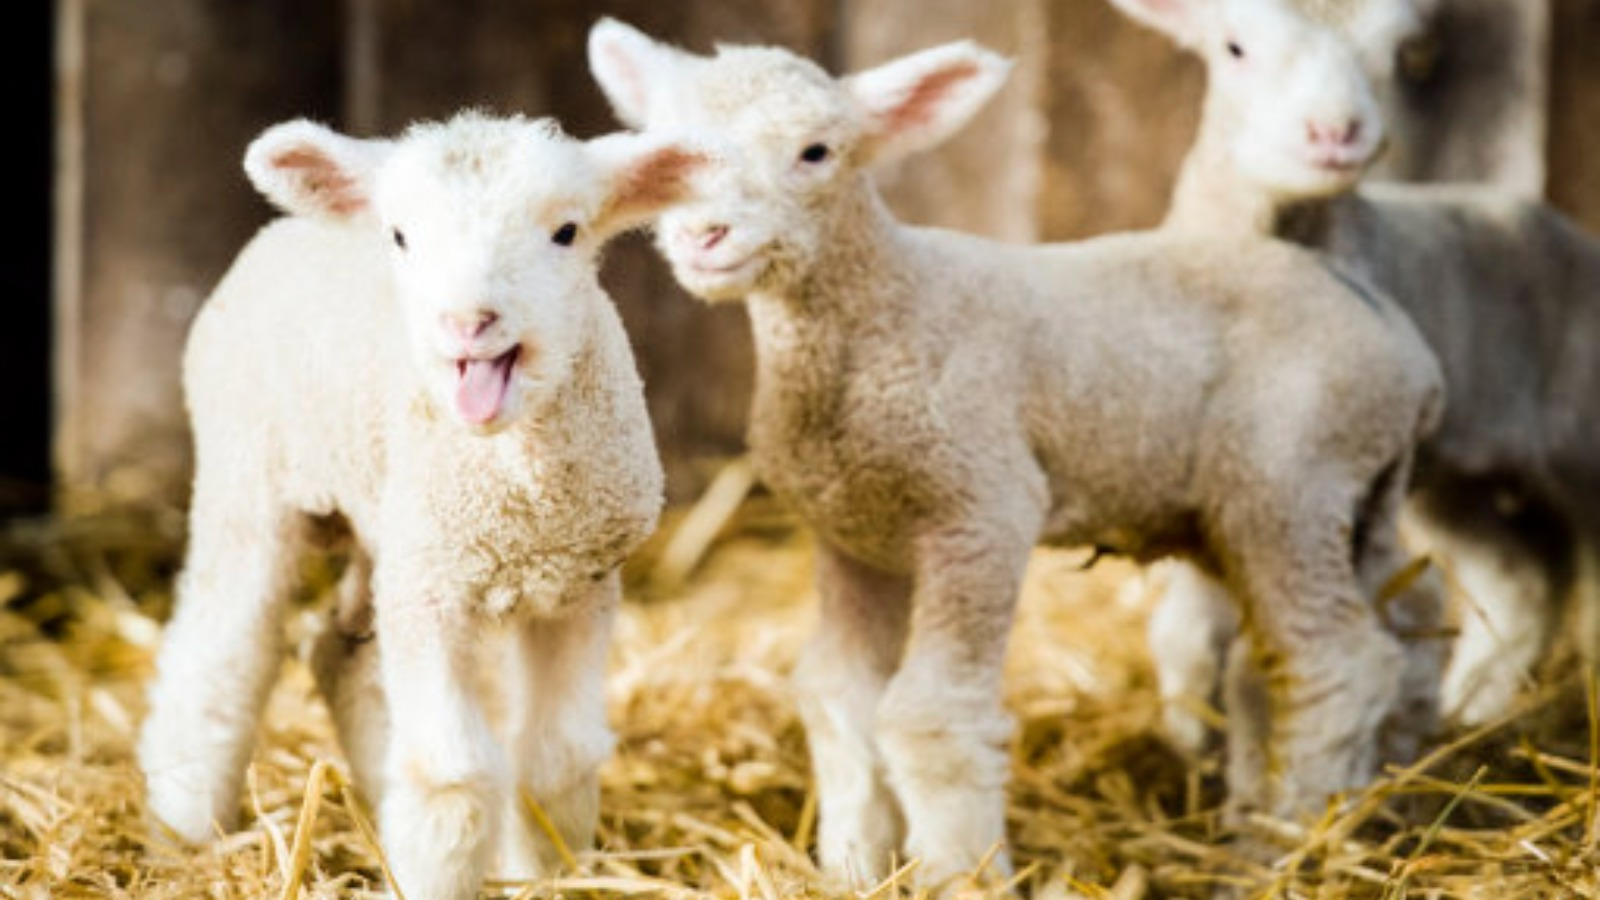 Police investigation launched after three newborn lambs ...